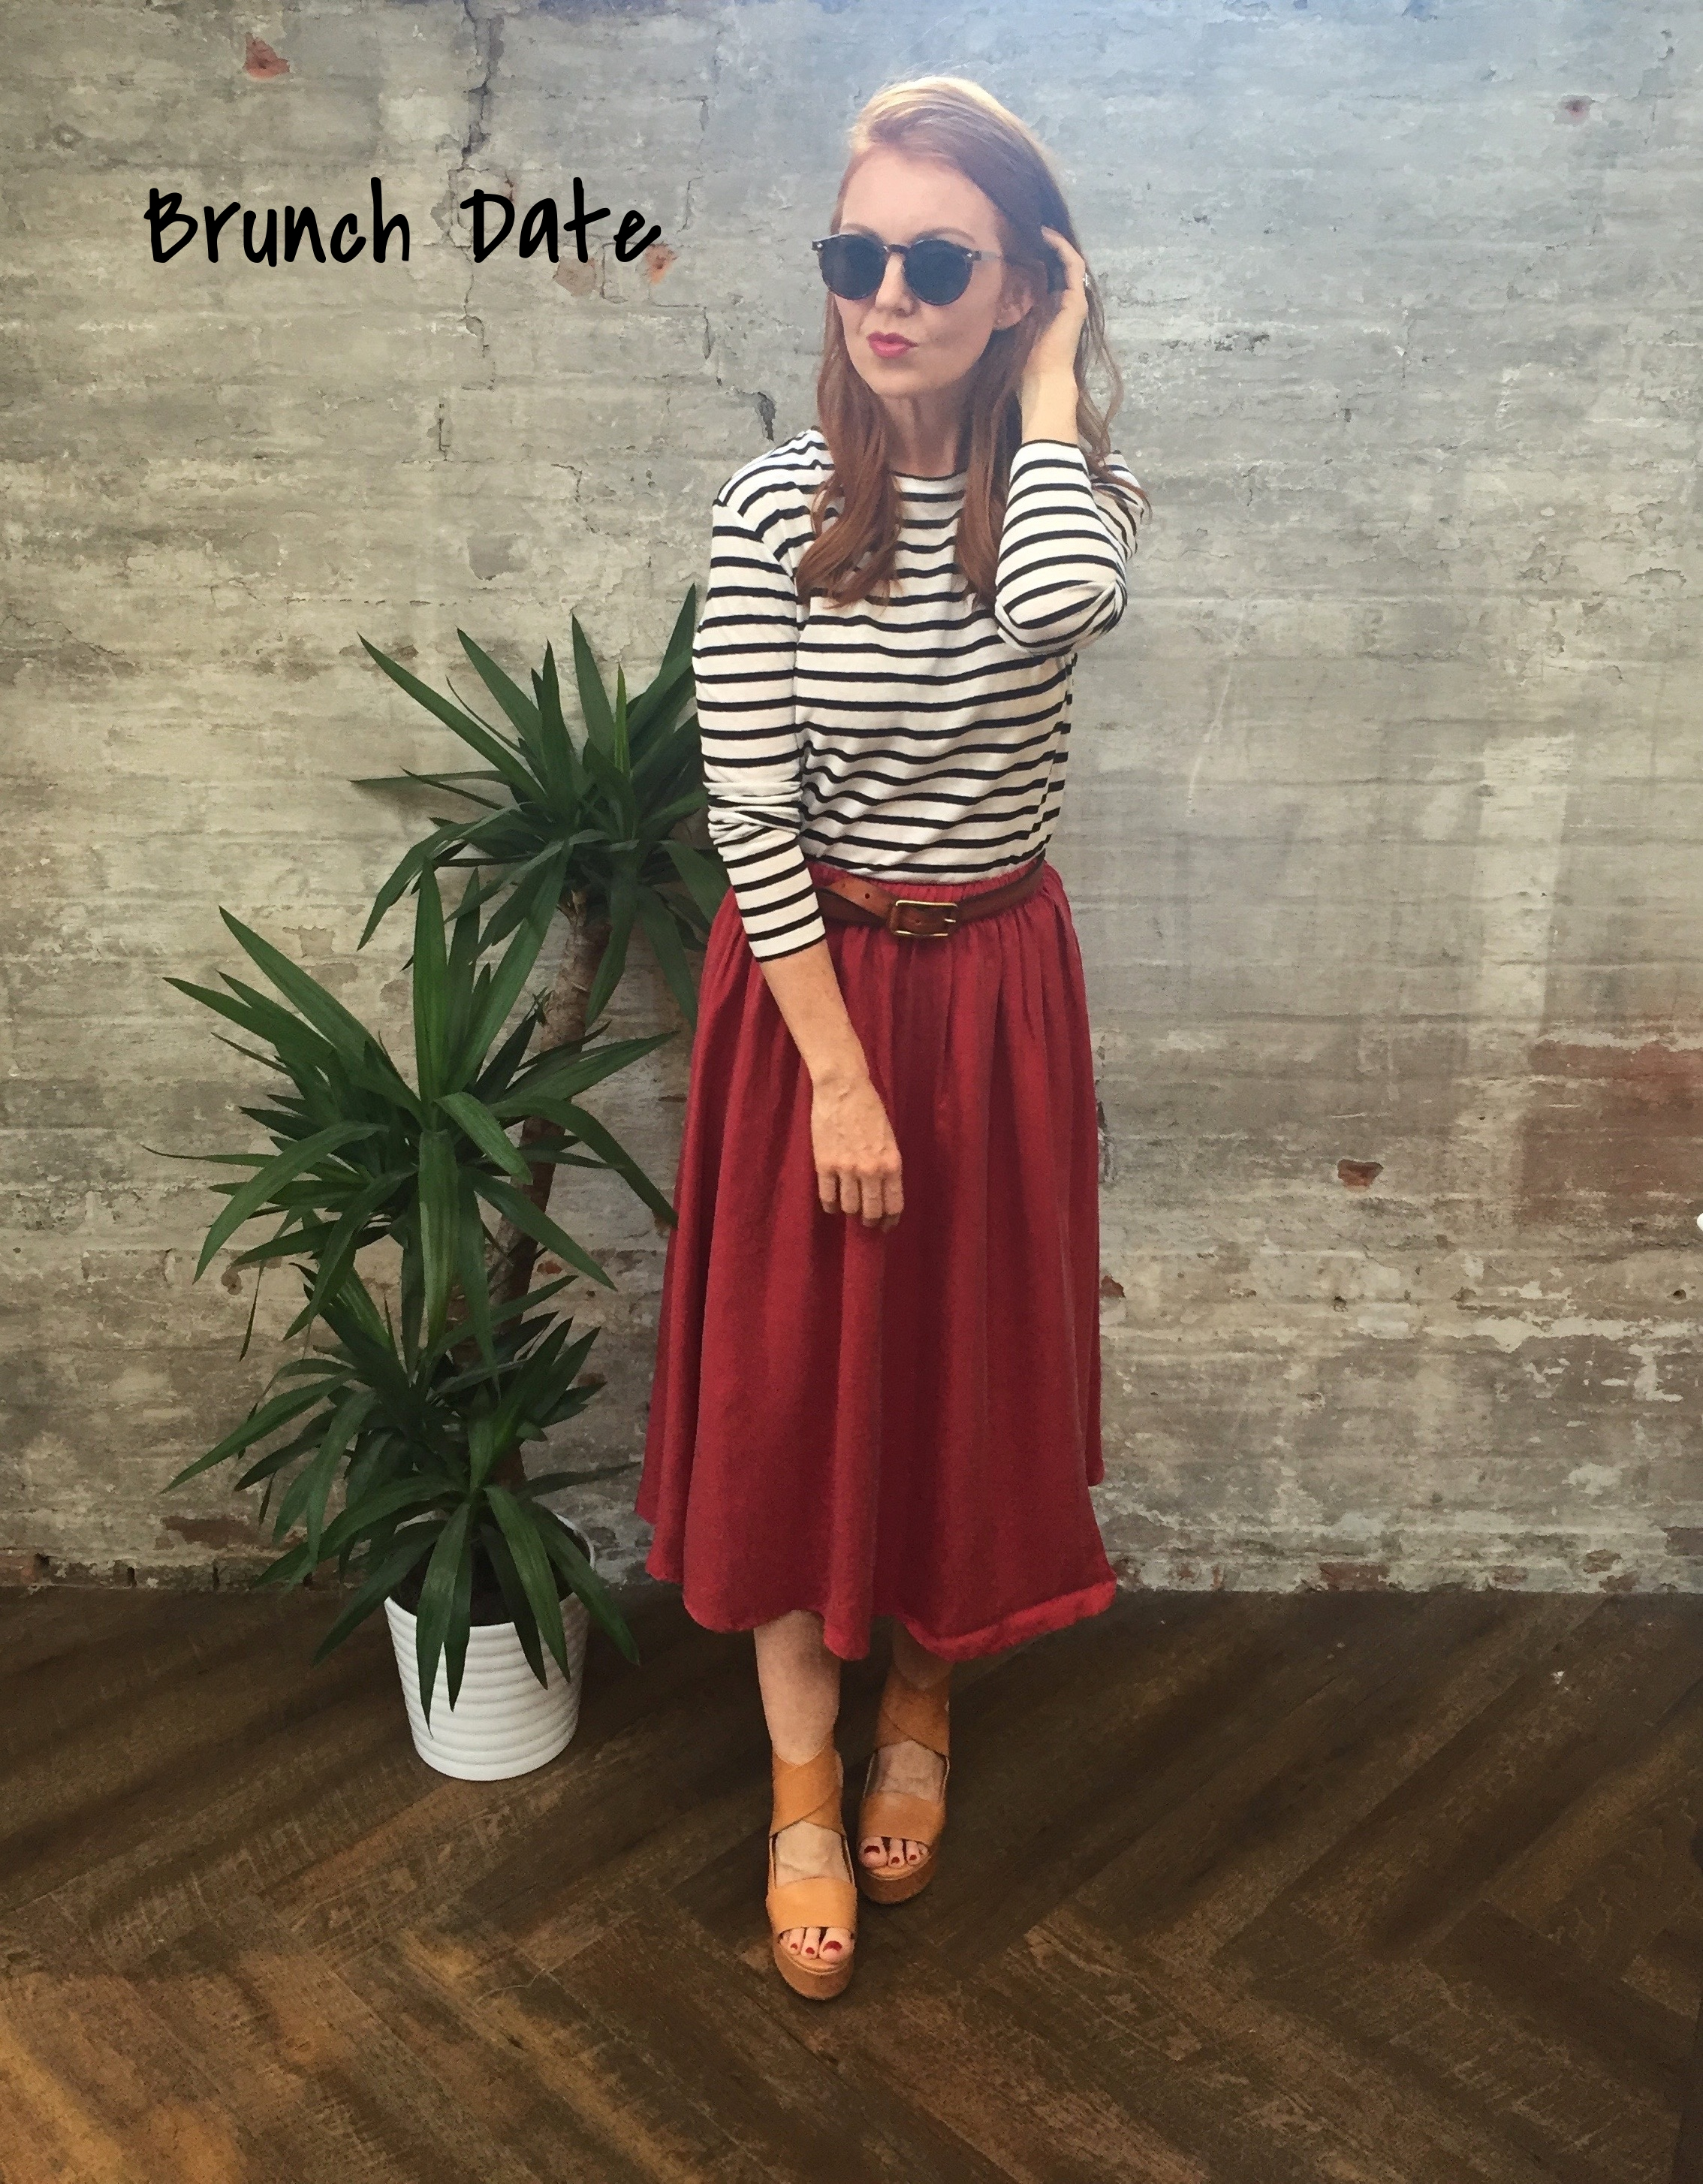 Summer brunch in Toronto features the city's top chefs at the most sough after restaurants putting a gourmet spin on bacon and eggs. Your hangover sweats will not cut it if you hope to score a table on one of hottest patios. Dress to impress while keeping a low key persona with casual separates. Classic stripes are elevated with a flowing skirt that features an elastic waistband to accommodate generous helping of french toast and many fresh mimosas.  Tiger of Sweden Stripe Top $99 American Vintage Skirt $188 Tiger of Sweden Sandals $299 Tiger Of Sweden Leather Belt $99 Le Specs Sunglasses $88  Tip: One of our favourite brunch spots is School, a must have is the Chicken & waffles! What's your favourite brunch spot?